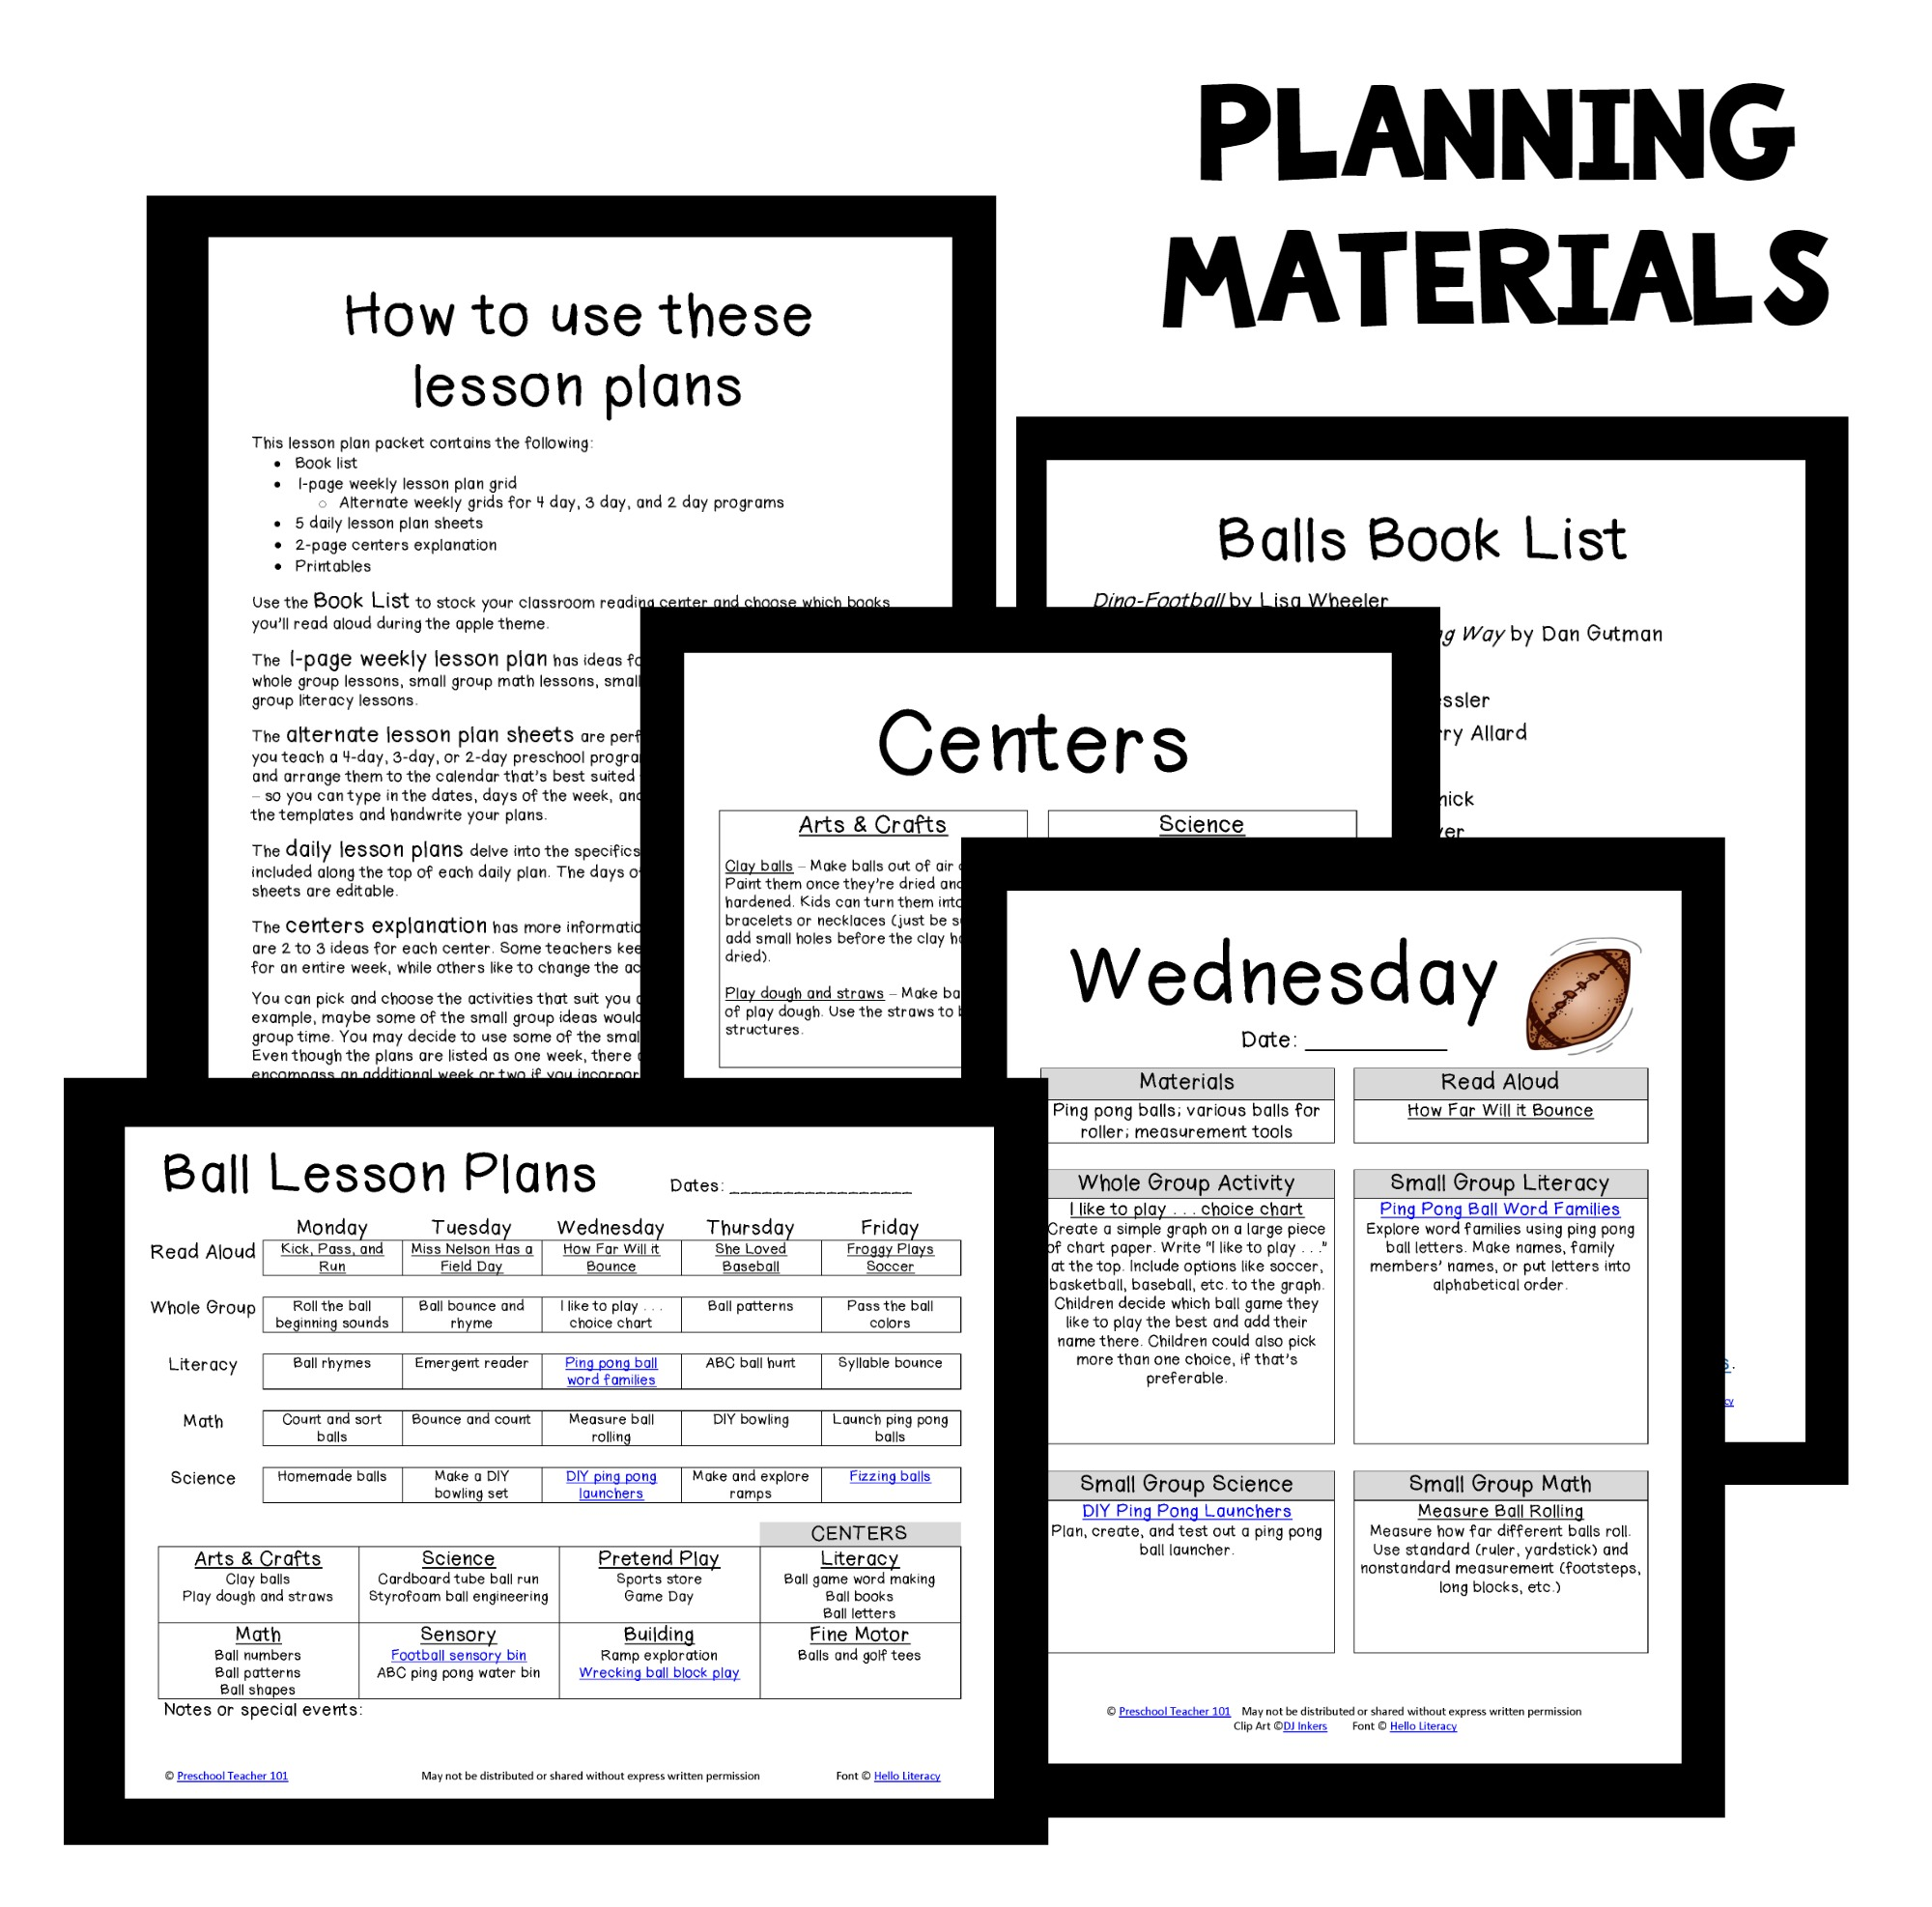 pt-lesson-plan-materials-snapshot-balls